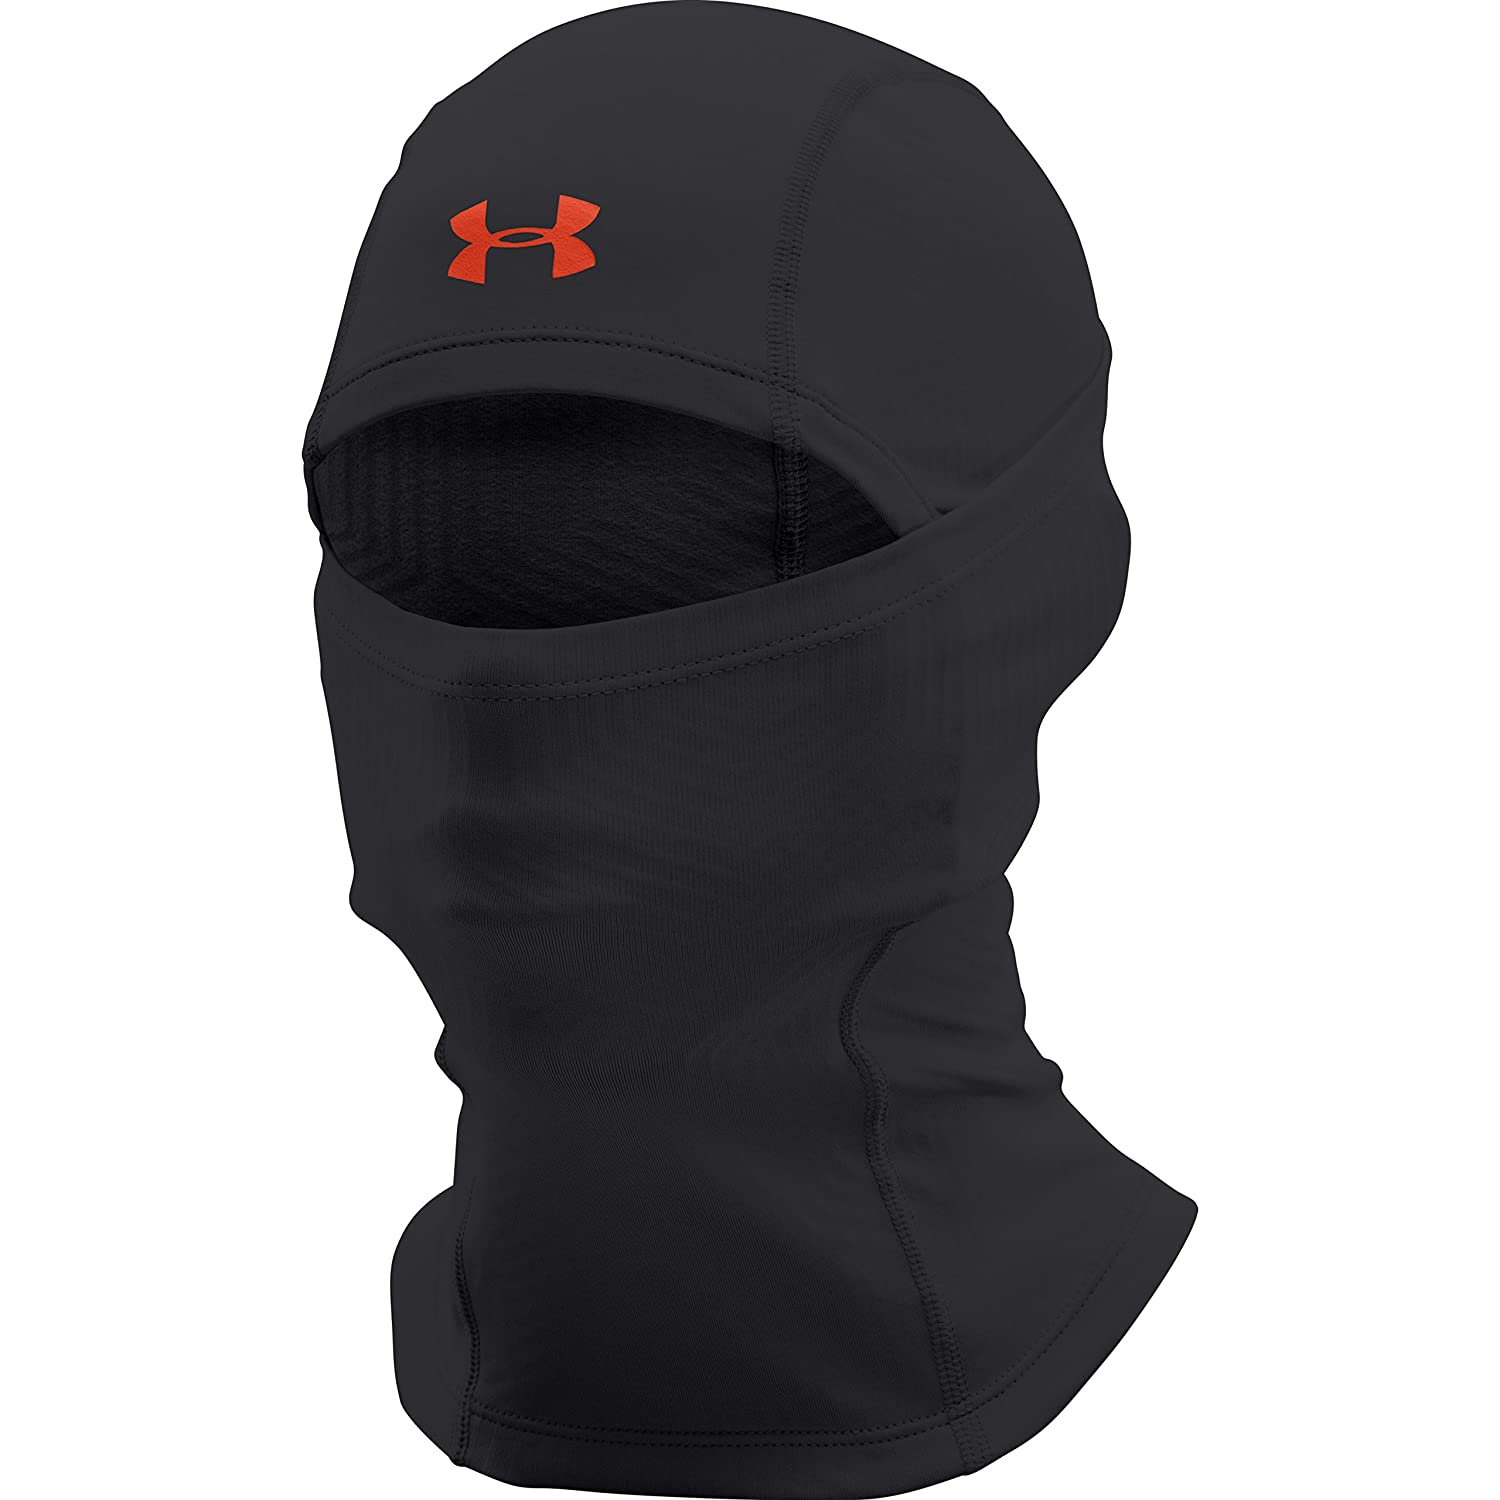 Under Armour ColdGear Infrared Tactical Sturmhauben - Black 002 (One Size)